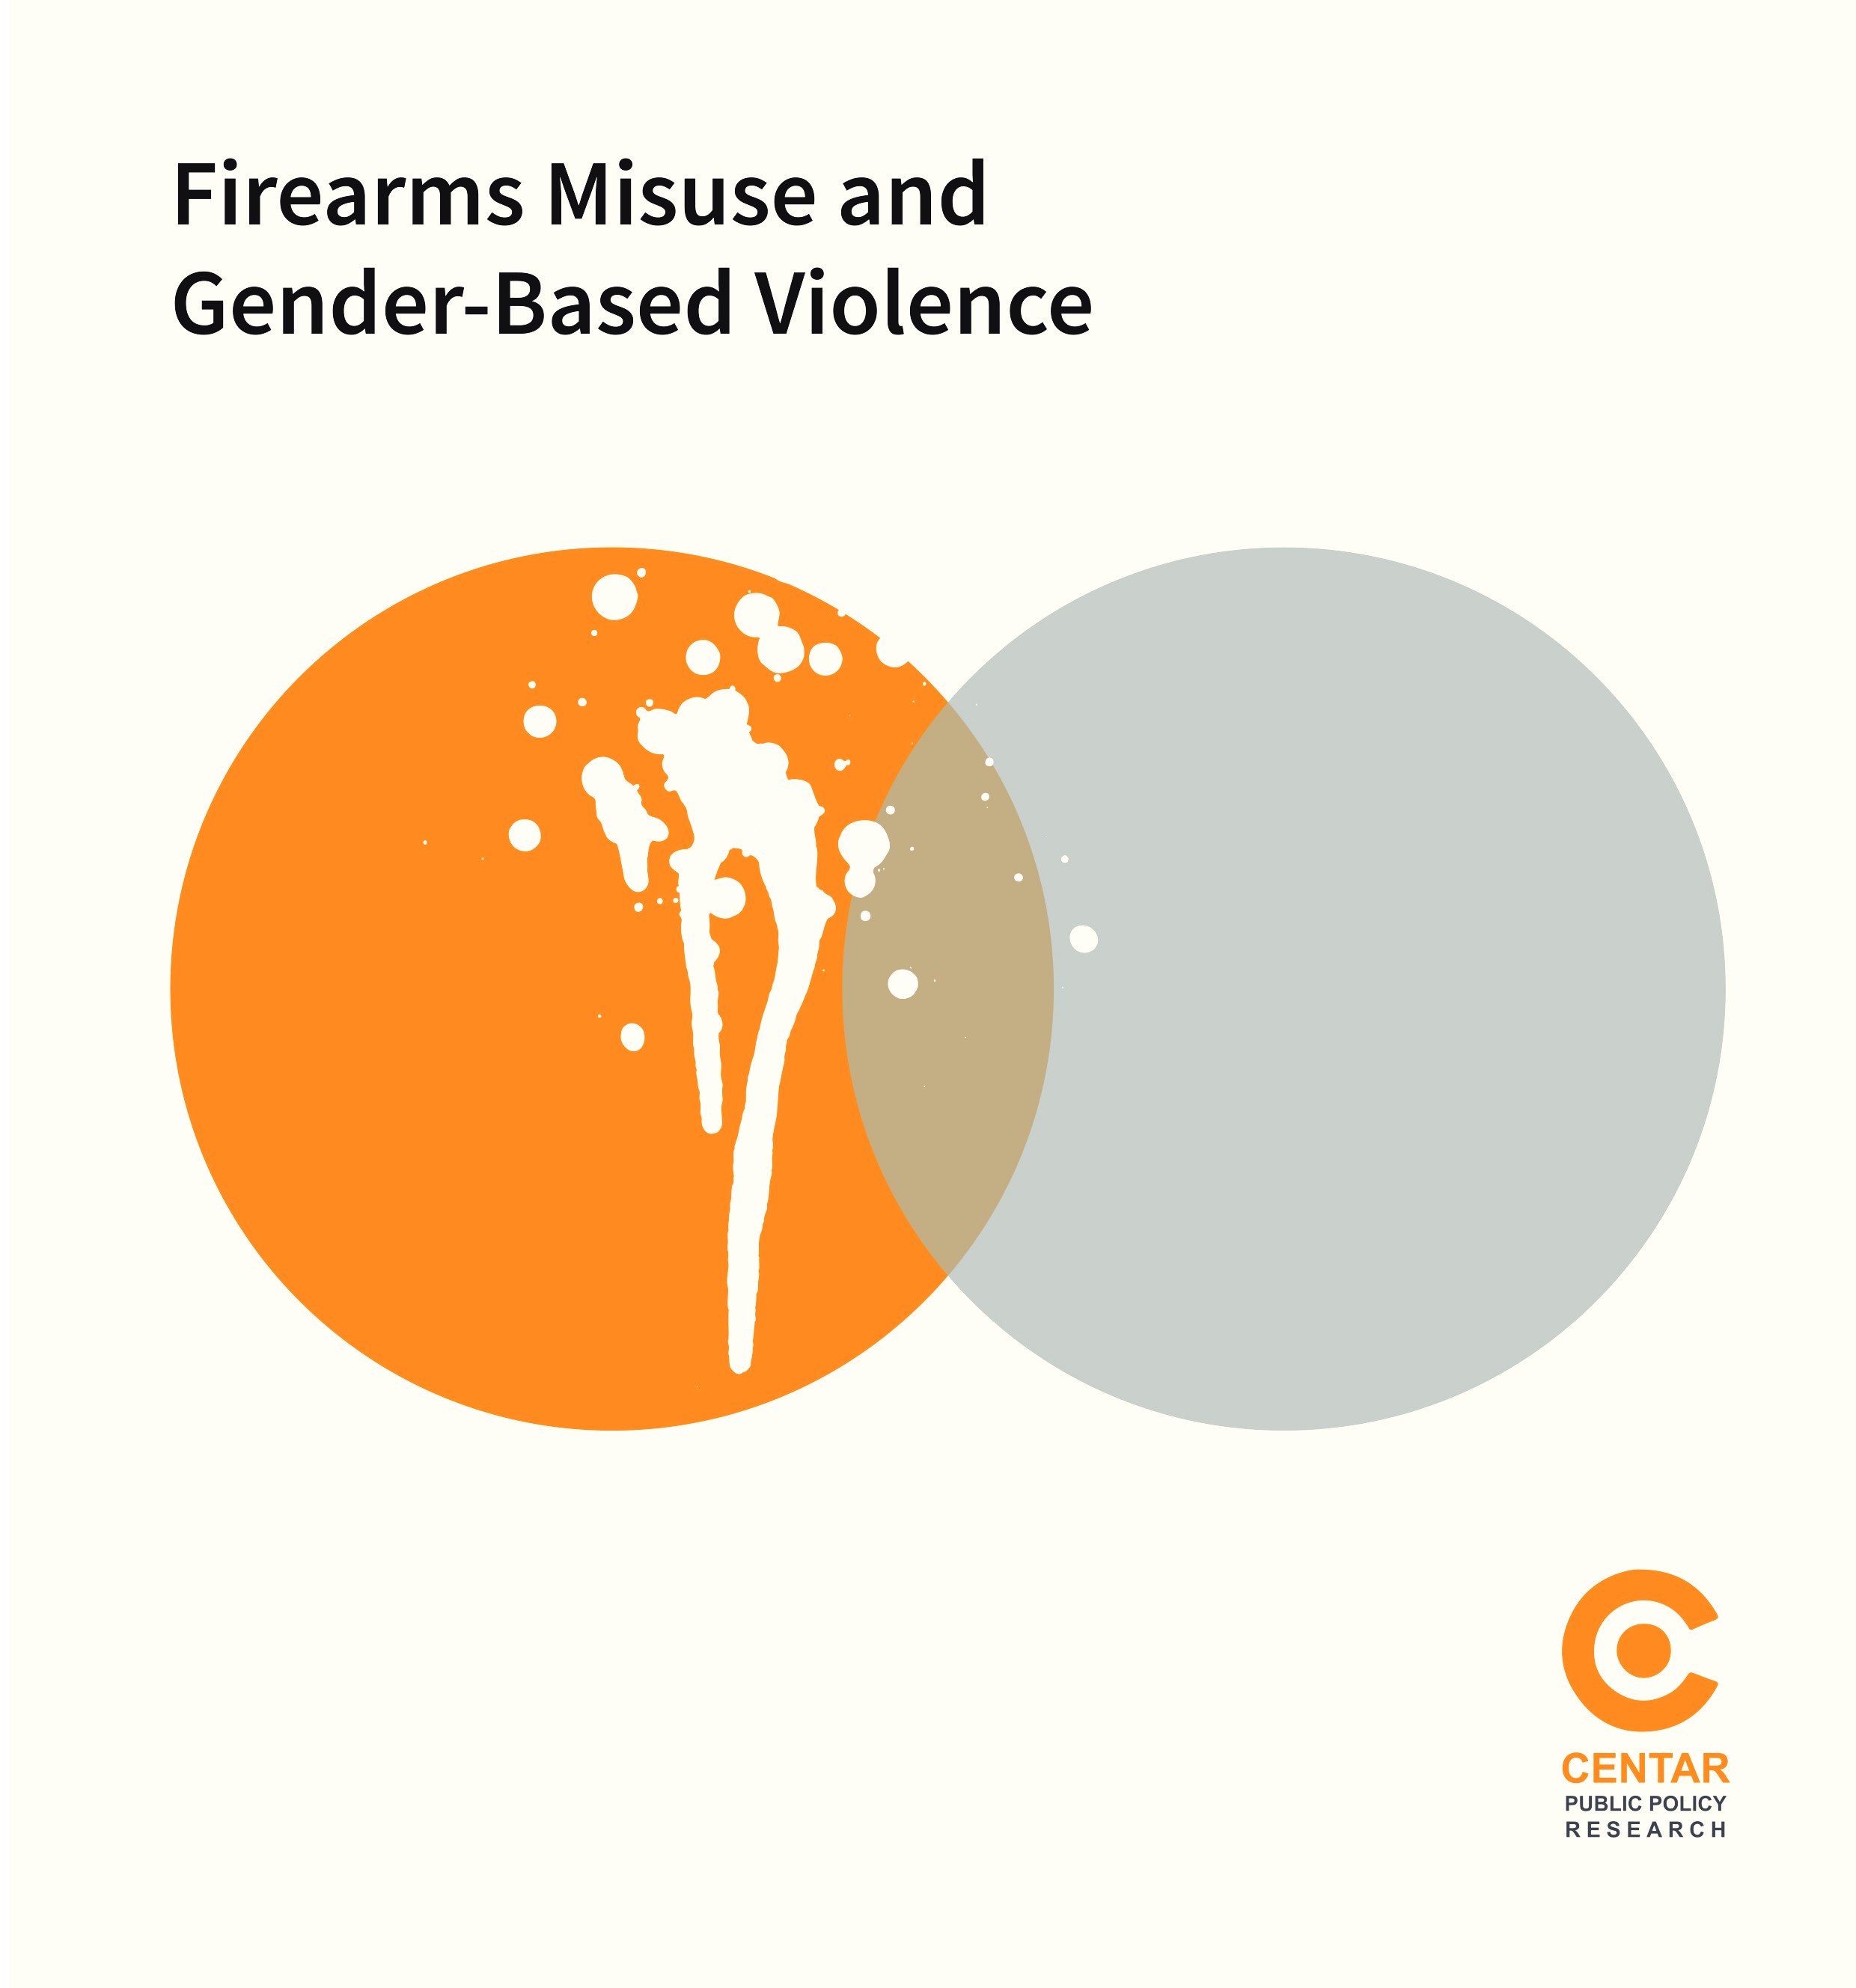 Firearms Misuse and Gender-based Violence